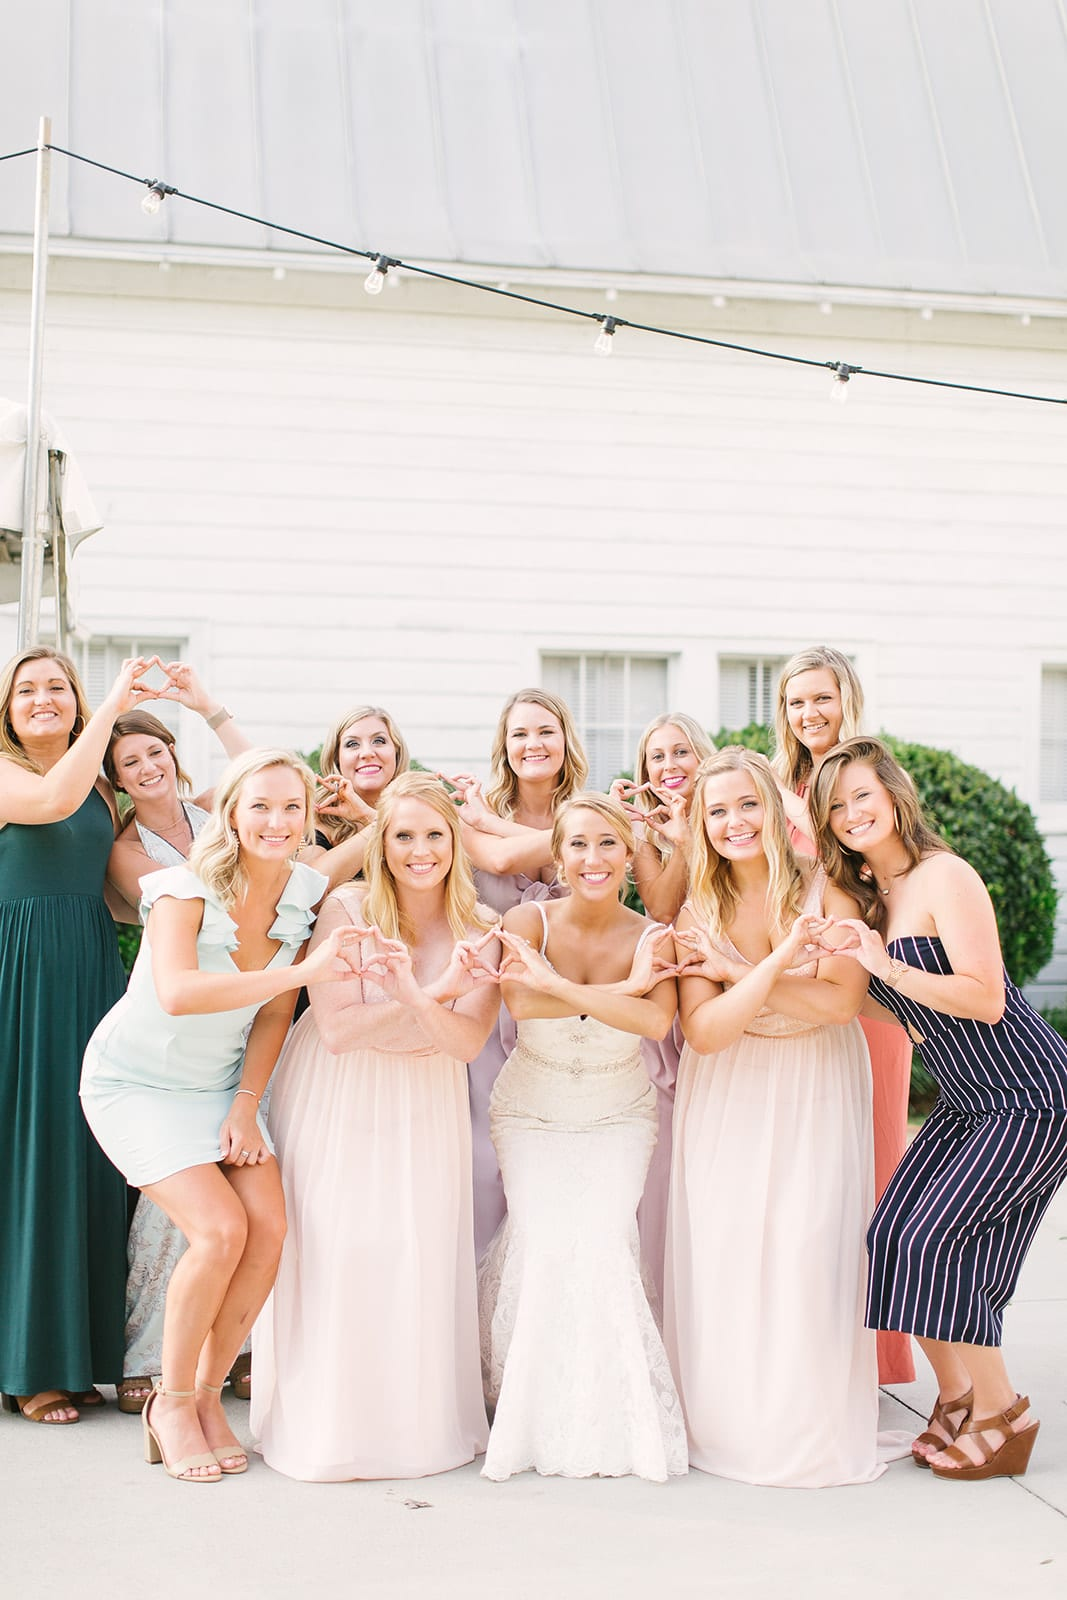 Bride poses with her sorority sisters during cocktail hour at her spring Dairy Barn wedding which was coordinated by Magnificent Moments Weddings